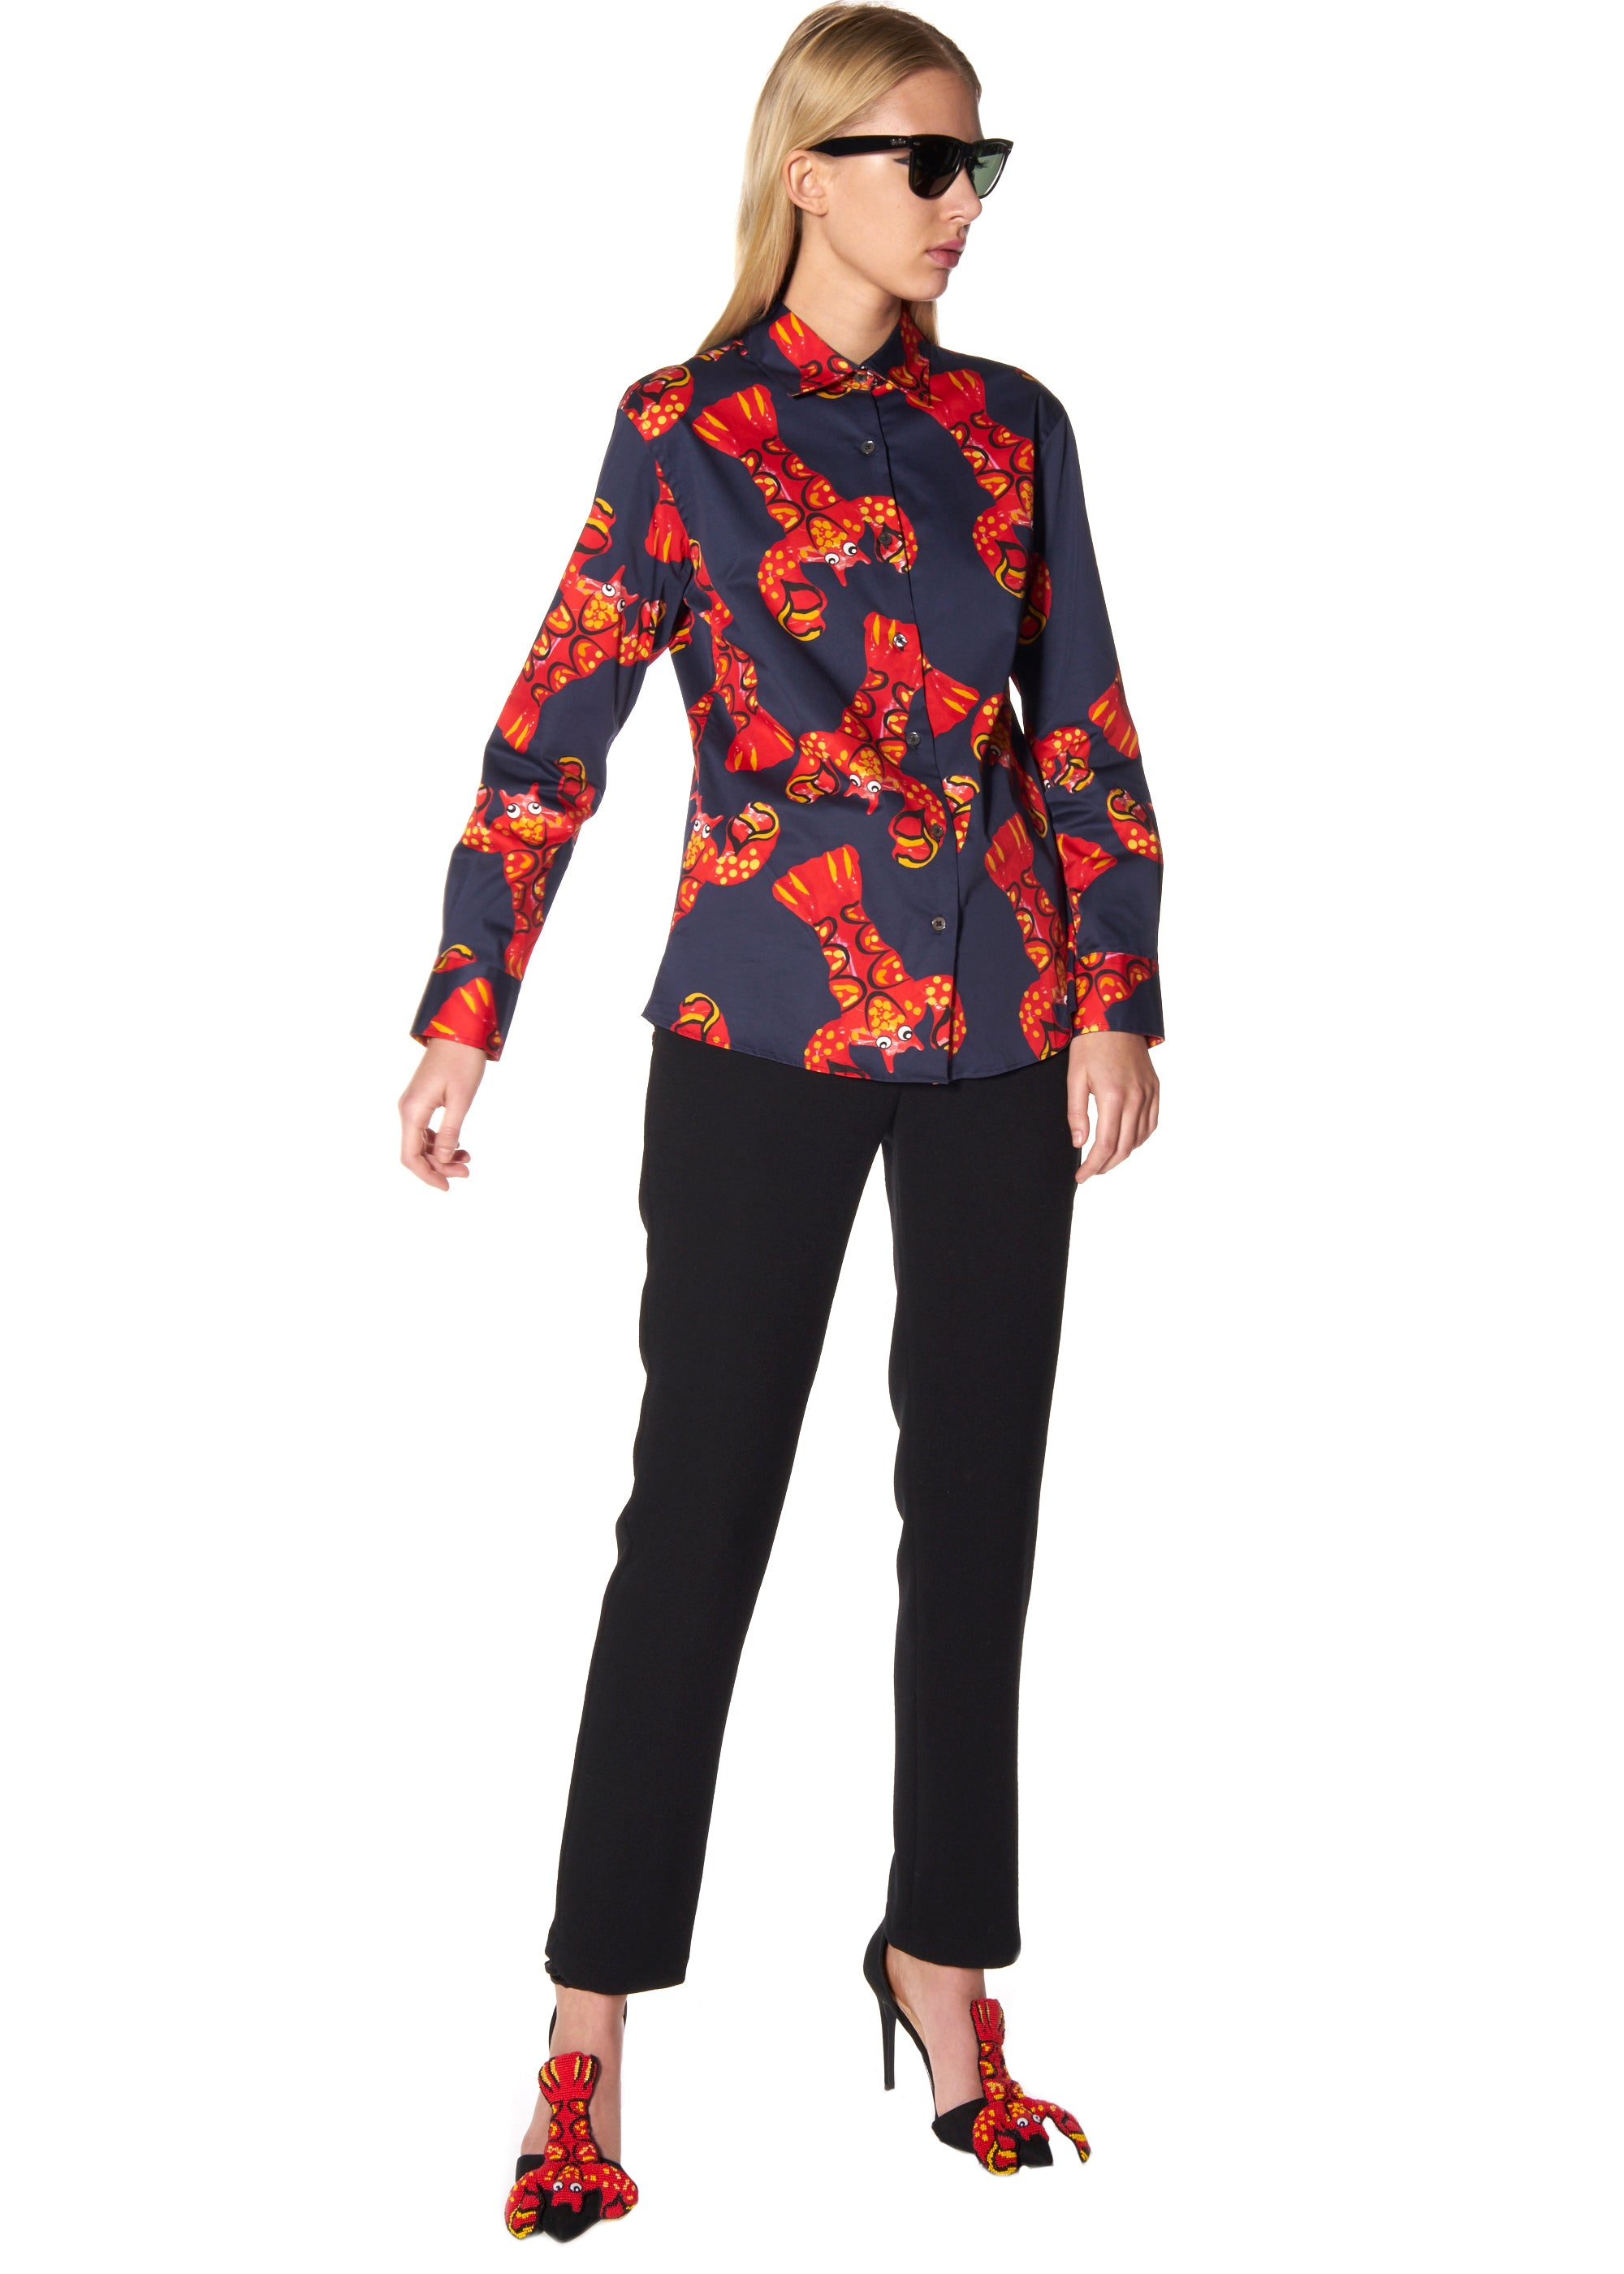 """ROCK LOBSTER"" CLASSIC SHIRT - Women's Tops - Libertine"